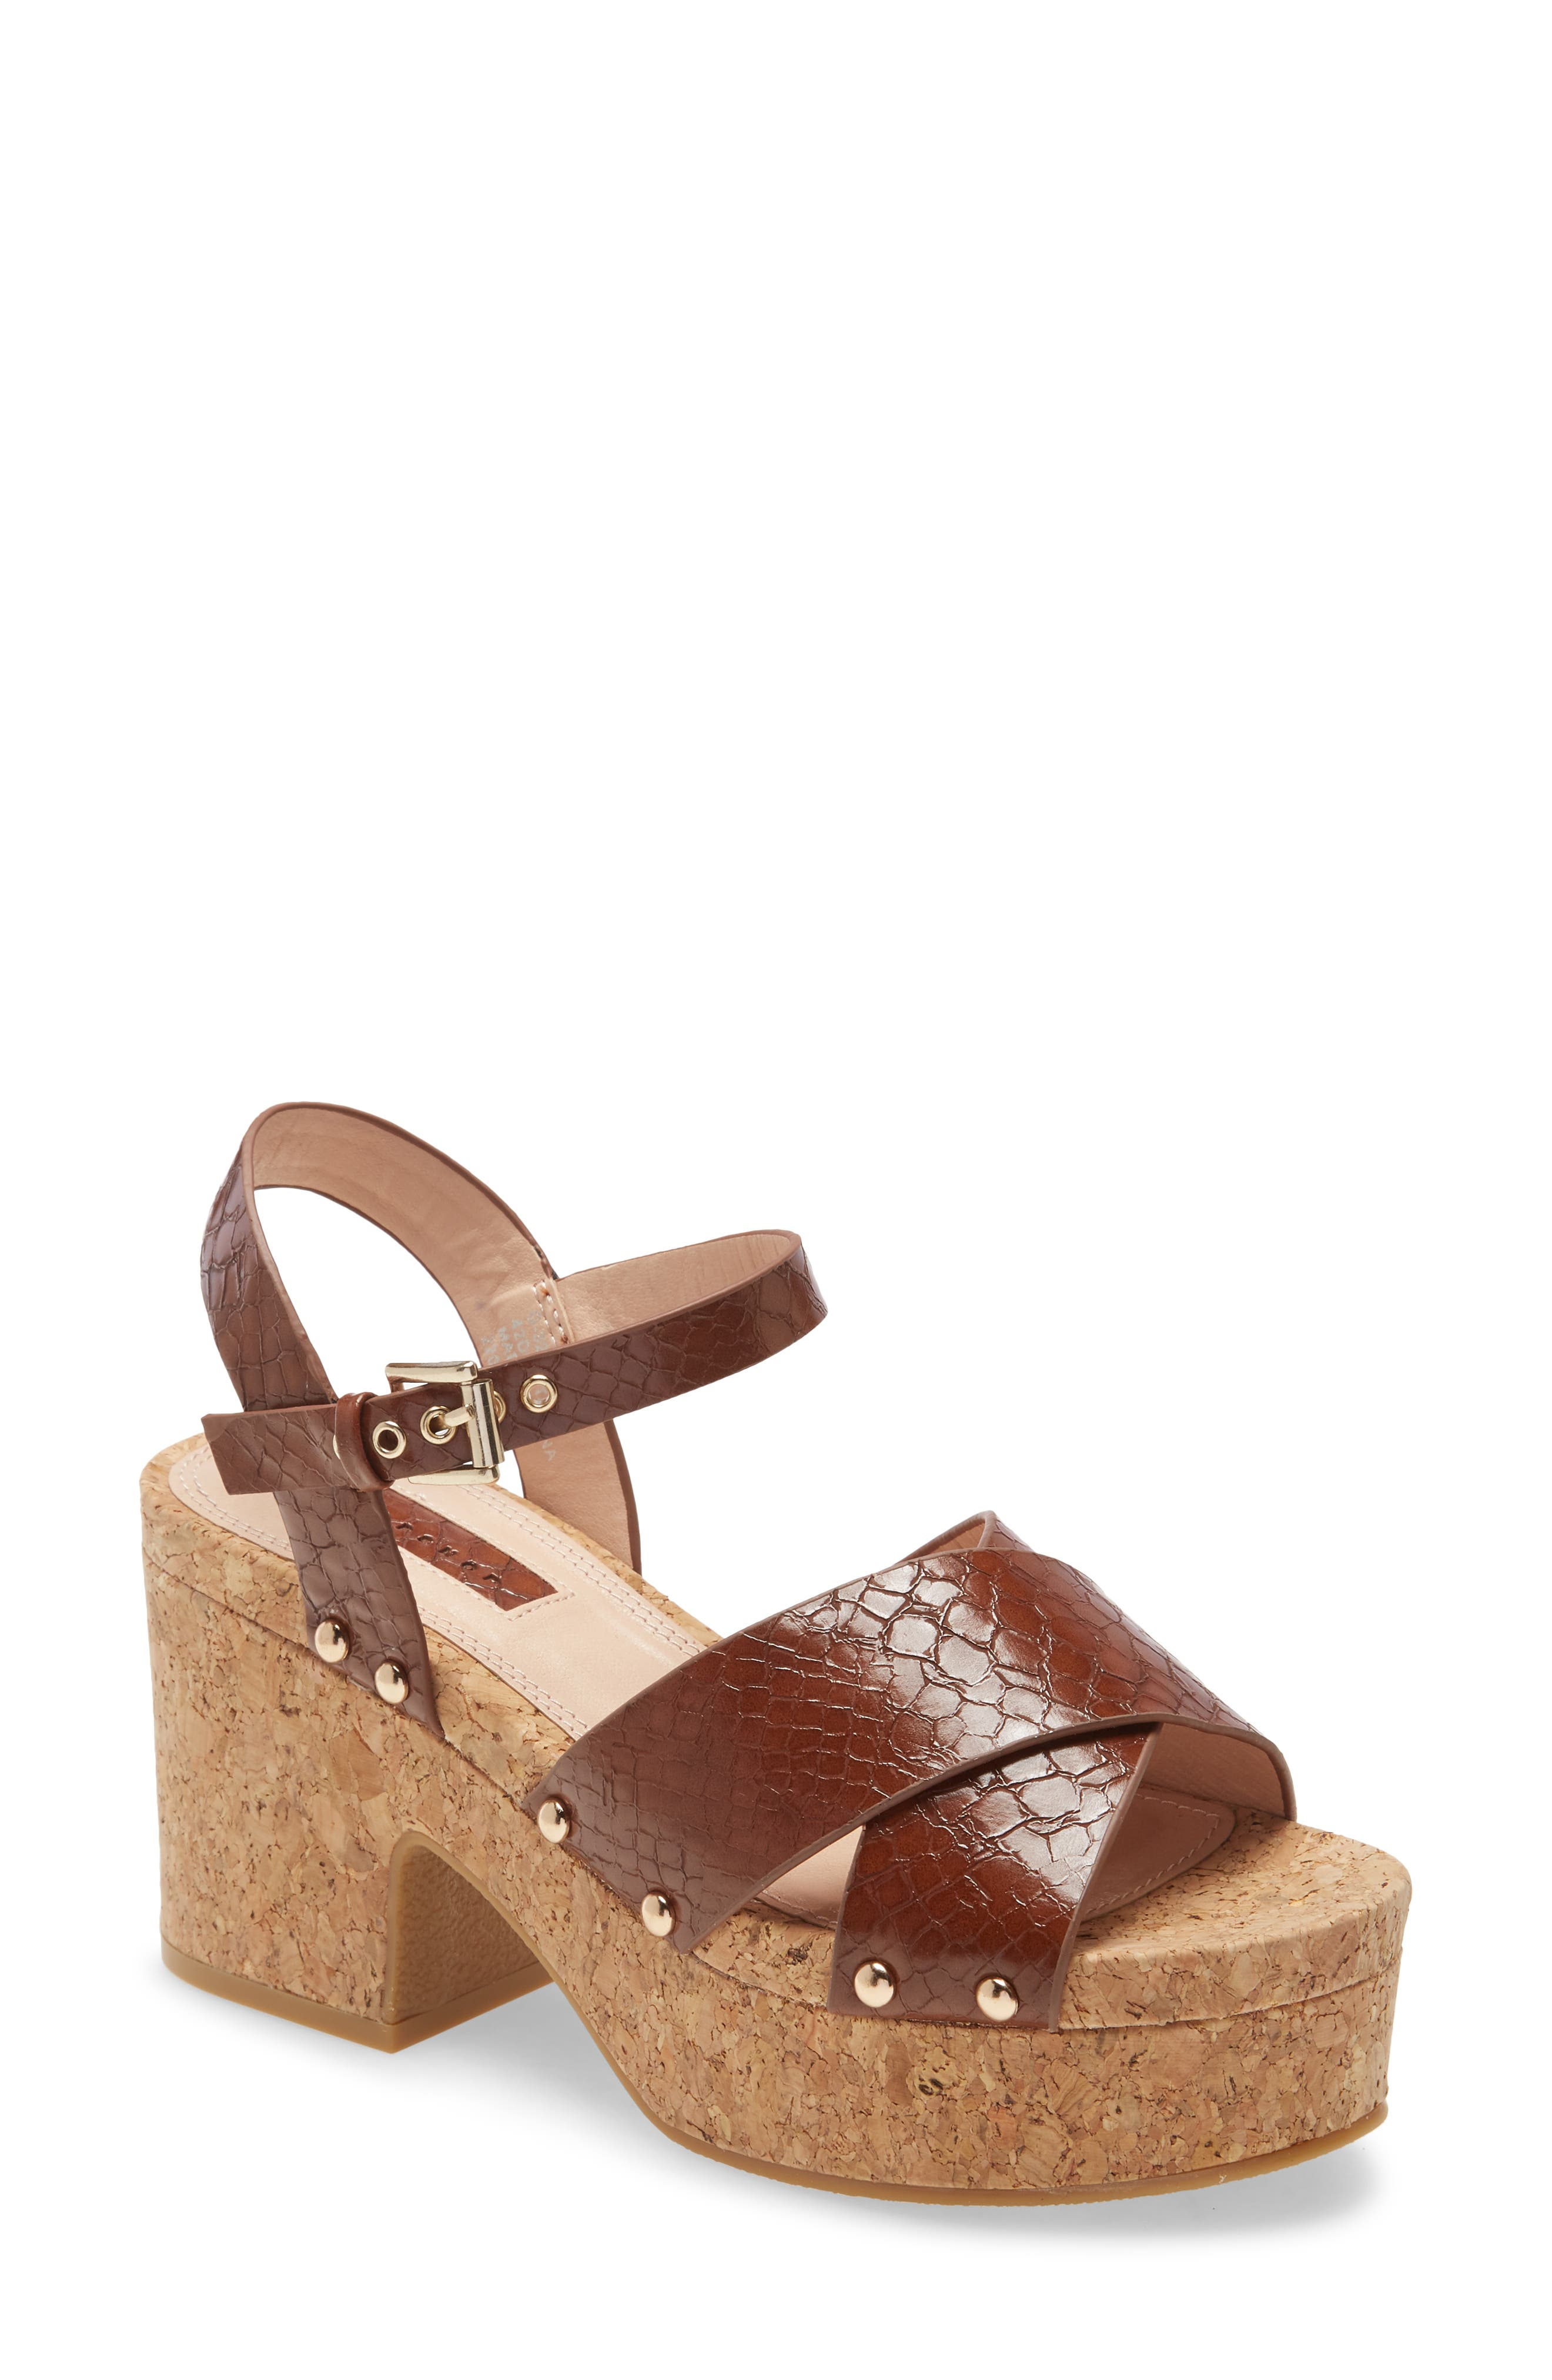 Snakeskin-embossed straps pair with a cork-textured platform sole to kick up the appeal of a sandal that puts chunky vintage vibes under any look. Style Name: Topshop Dancer Platform Sandal (Women). Style Number: 6084294. Available in stores.